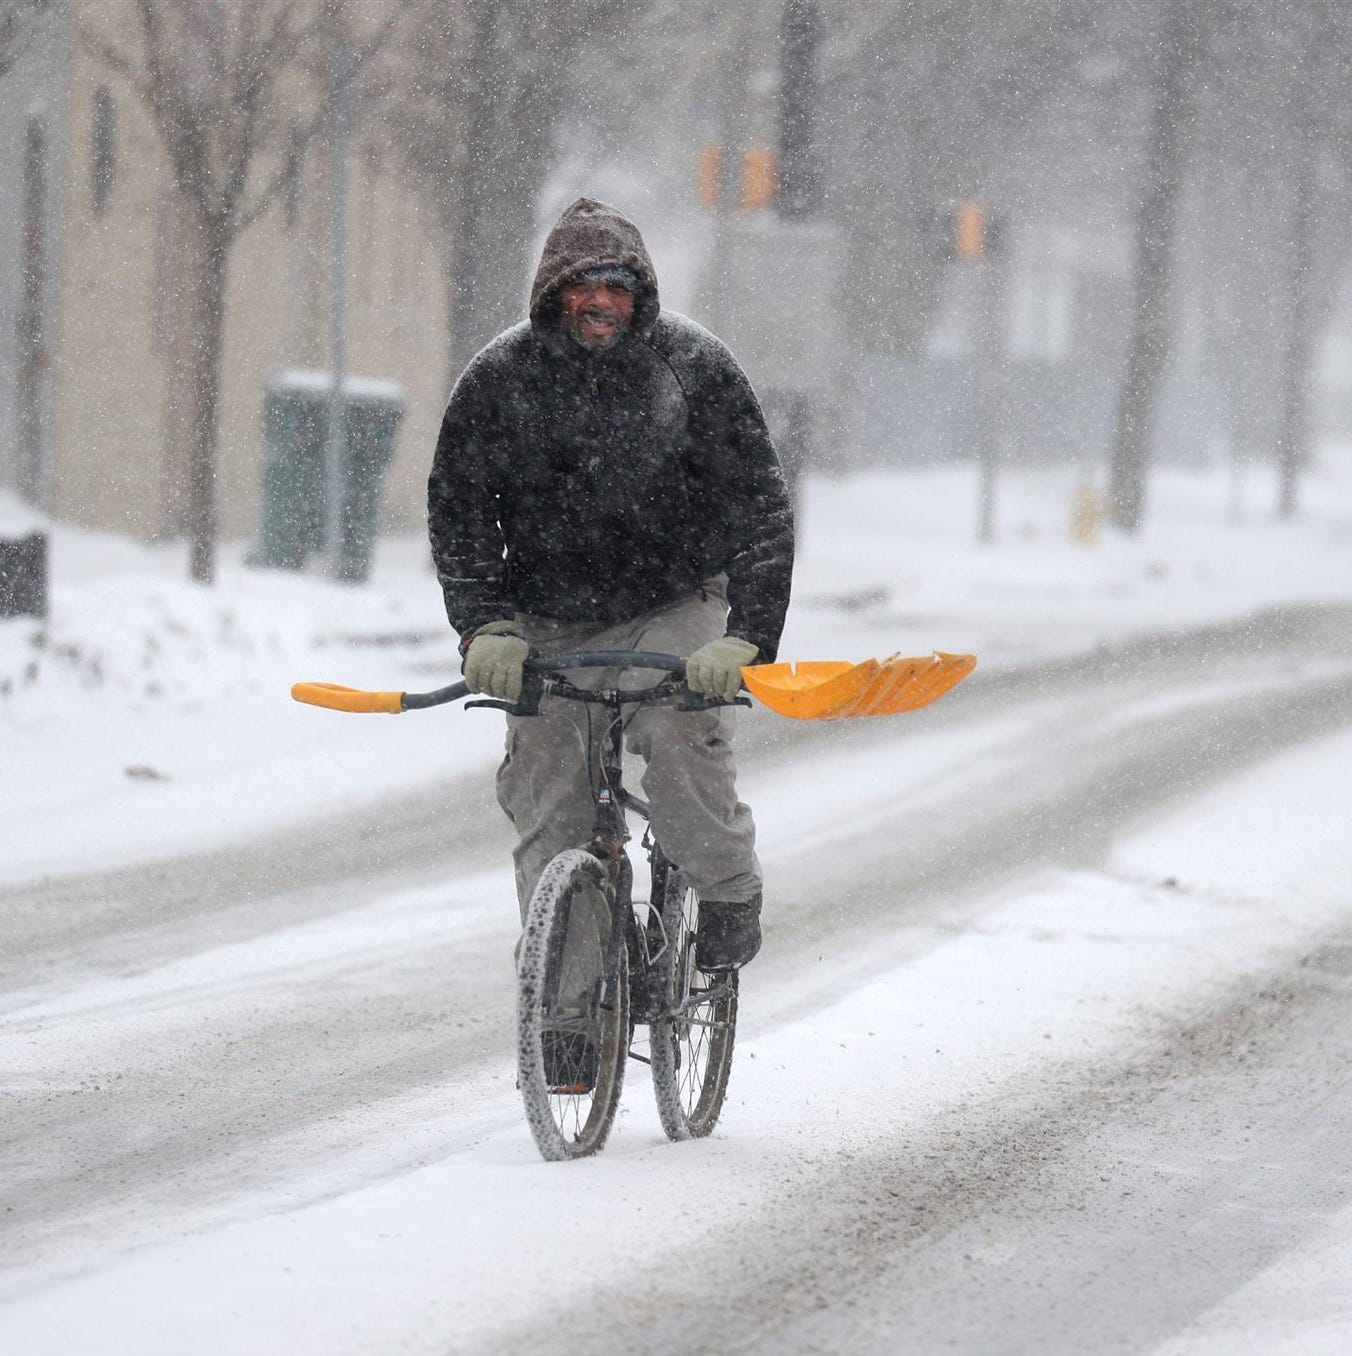 Rochester snowstorm: Latest updates on forecast, closings and snow totals